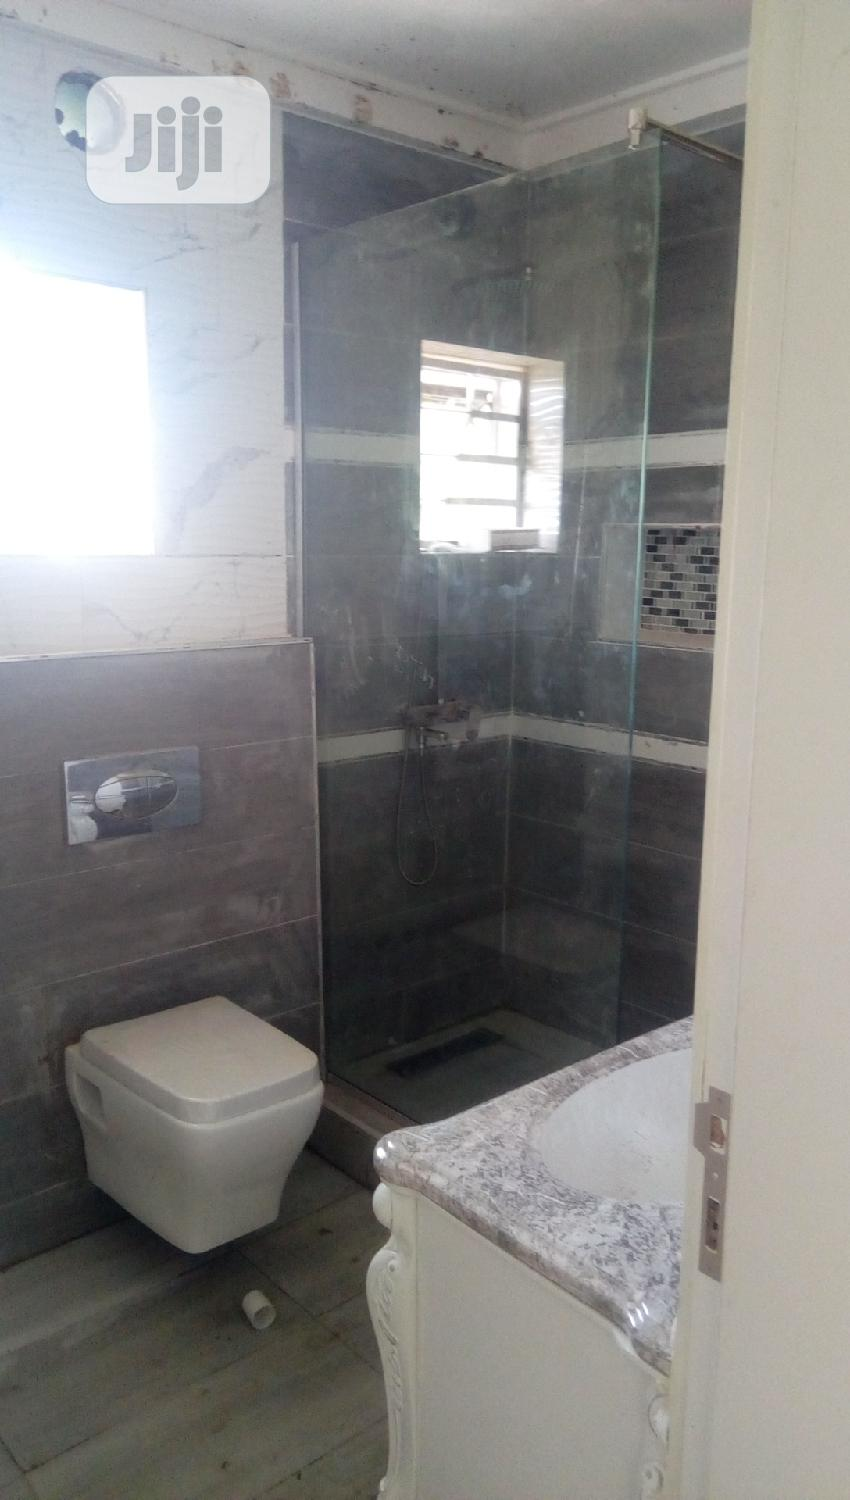 Shower Glass Cubicle @ Great. | Plumbing & Water Supply for sale in Asokoro, Abuja (FCT) State, Nigeria